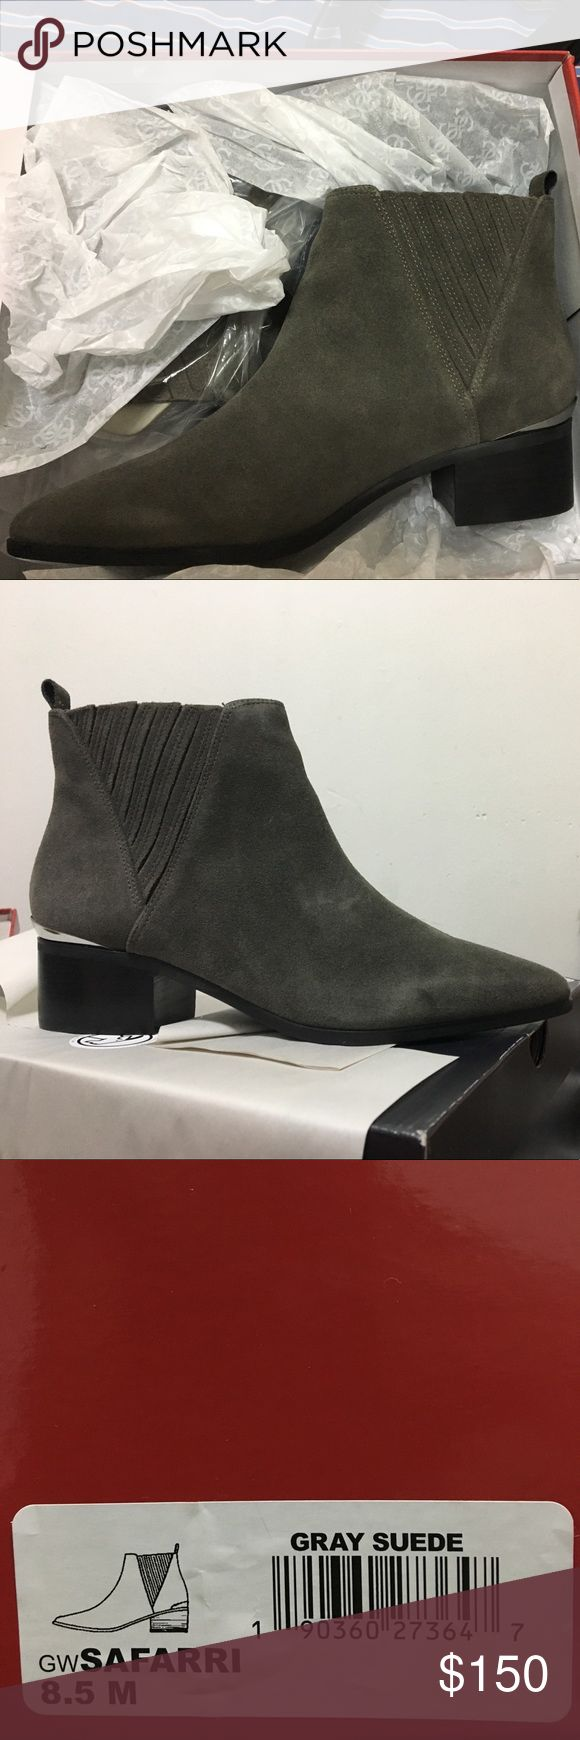 Guess Safari / safarri gray suede bootie Brand new deadstock shoe, never worn all in perfect condition. Pointed toe, gray suede, roughly 1 inch heel maybe 1.5 in. Shoe shipped as I received it; only taken it out for the pictures. Feel free to offer. If bundled with another women's shoe or dress, 20% off listed price Guess Shoes Ankle Boots & Booties